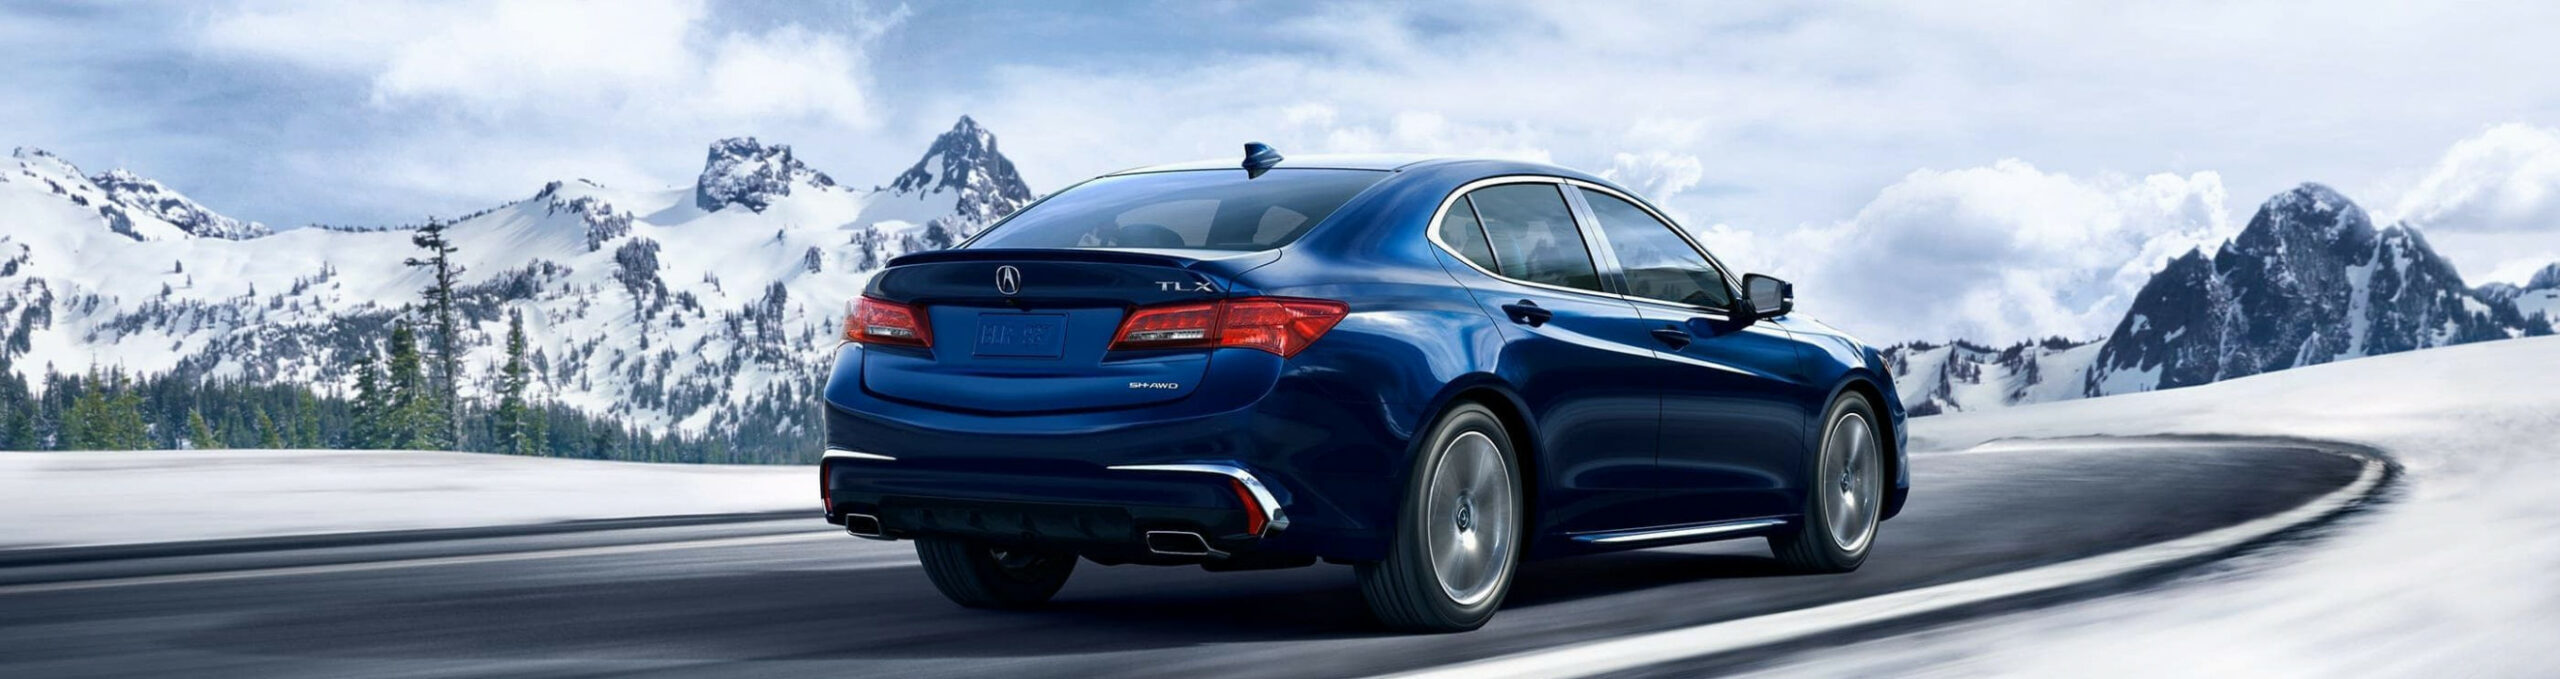 acura black friday deals 8 Release, Specs and Review 8*8 ..